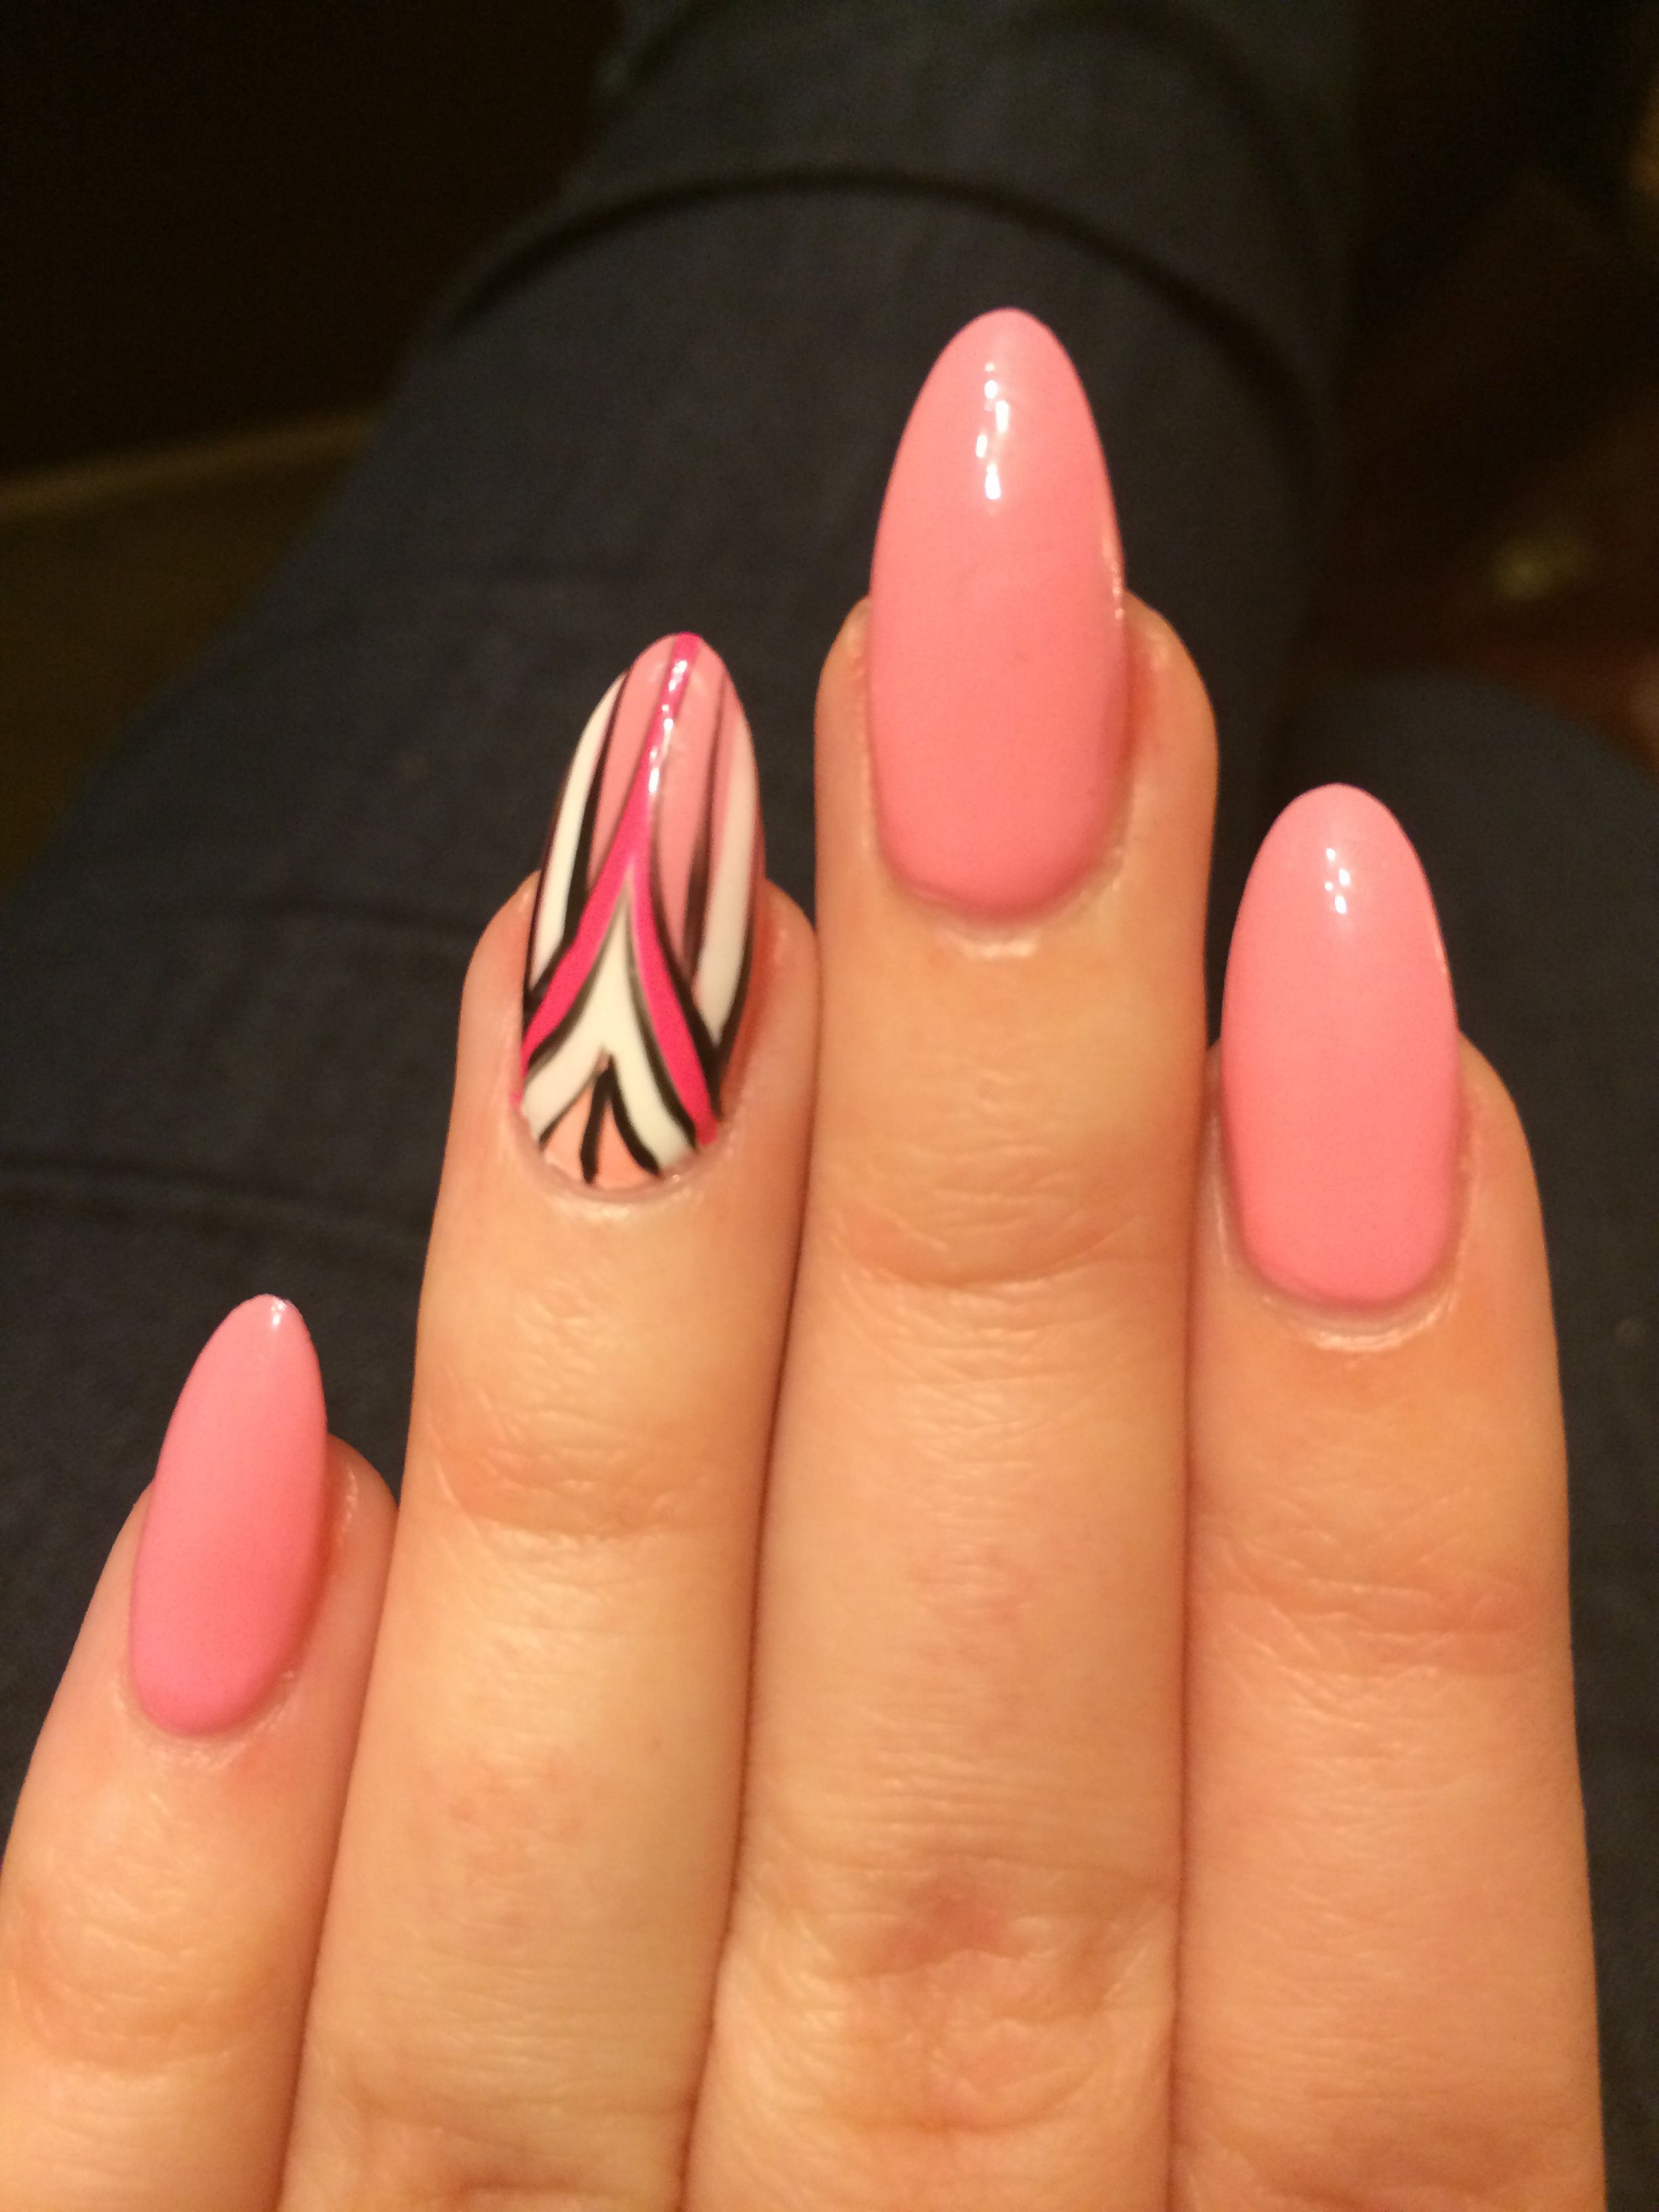 Pink stiletto nails with art deco design in white pink coral and ...